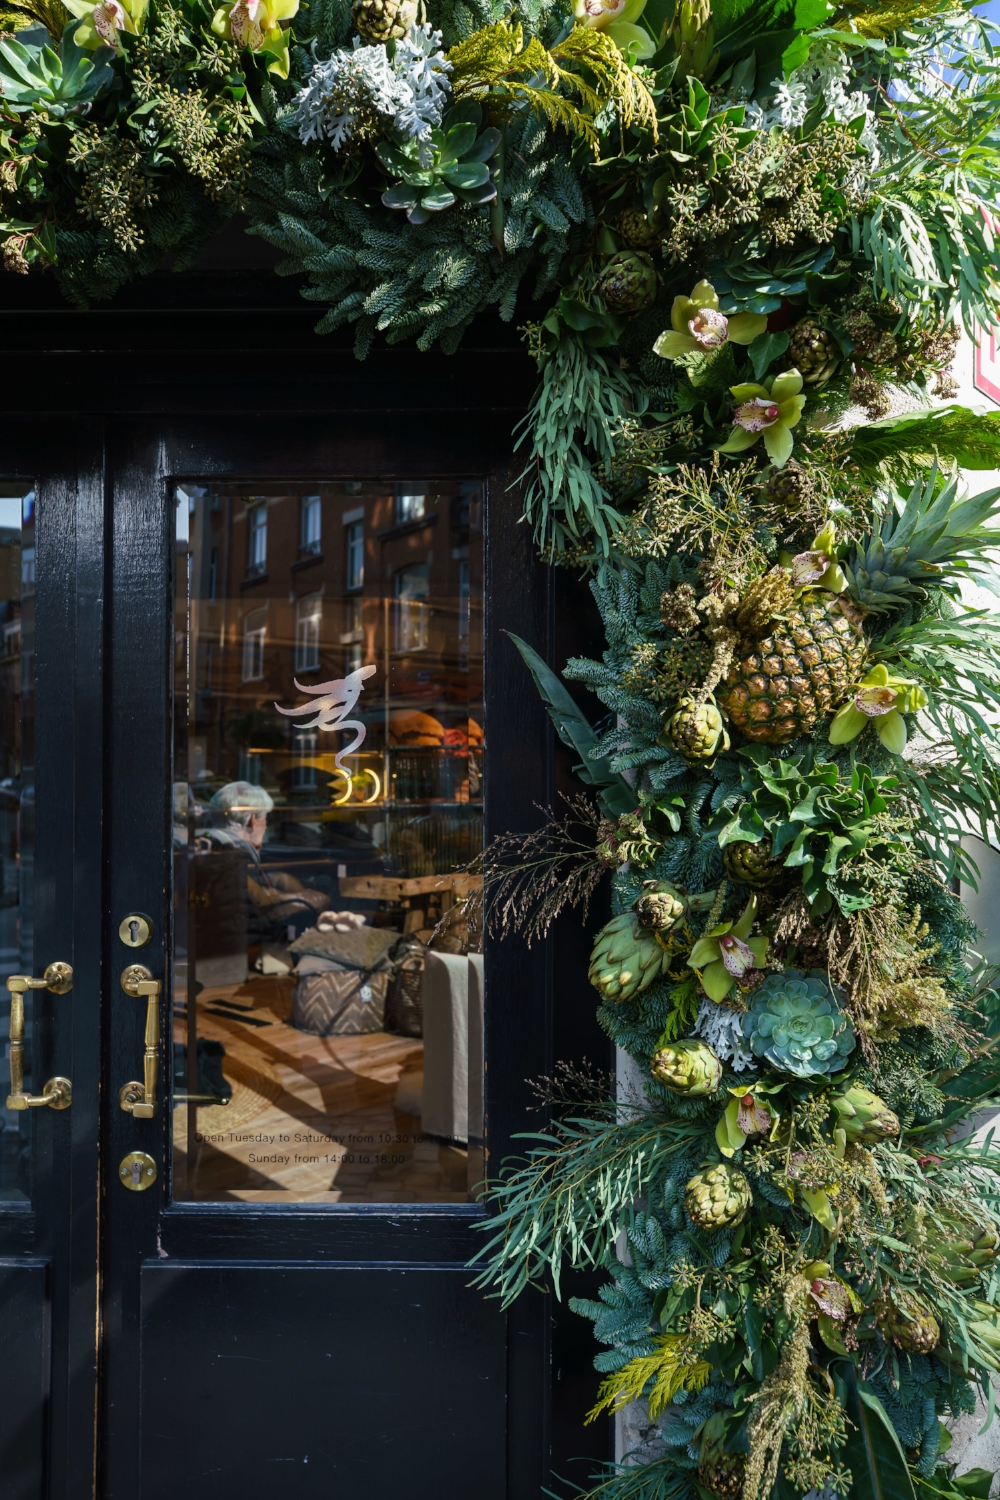 """Storefront of Lucia Esteves Lifestyle, Ixelles - Composition """"Green camaïeu"""" by Horty Poetry, December 2018 - photo by Frédéric Raevens"""